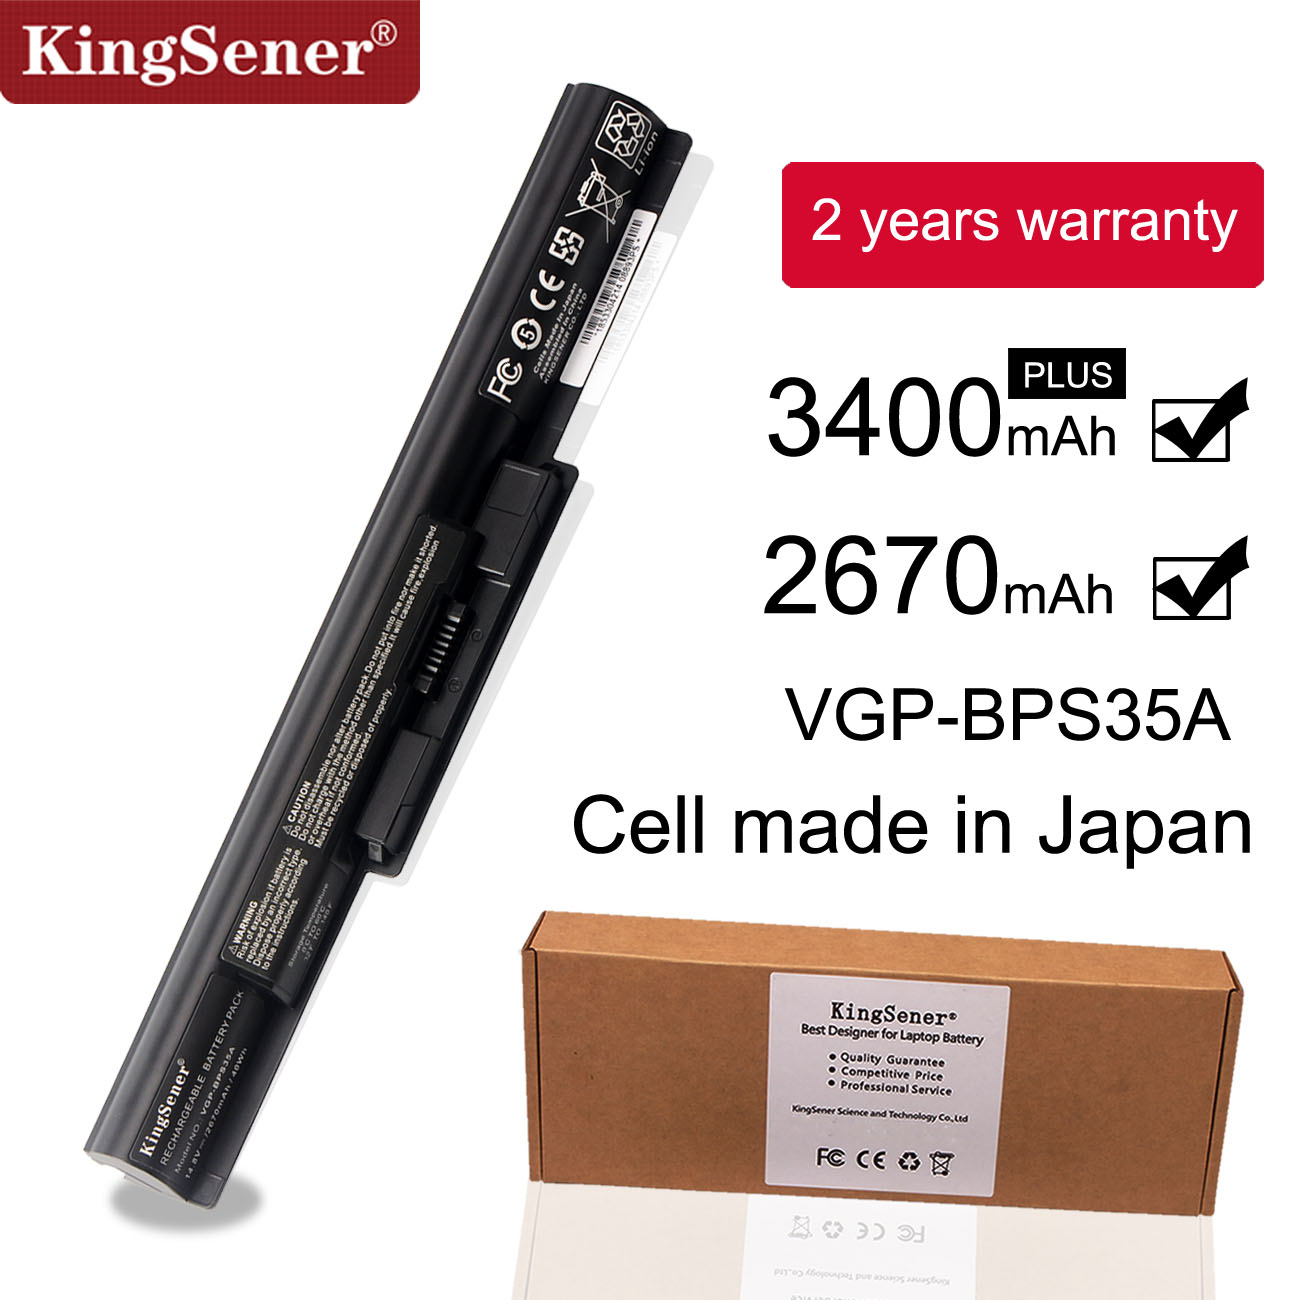 KingSener Japanese Cell VGP-BPS35A Battery For SONY Vaio Fit 14E 15E SVF1521A2E SVF15217SC SVF14215SC SVF15218SC BPS35 BPS35A